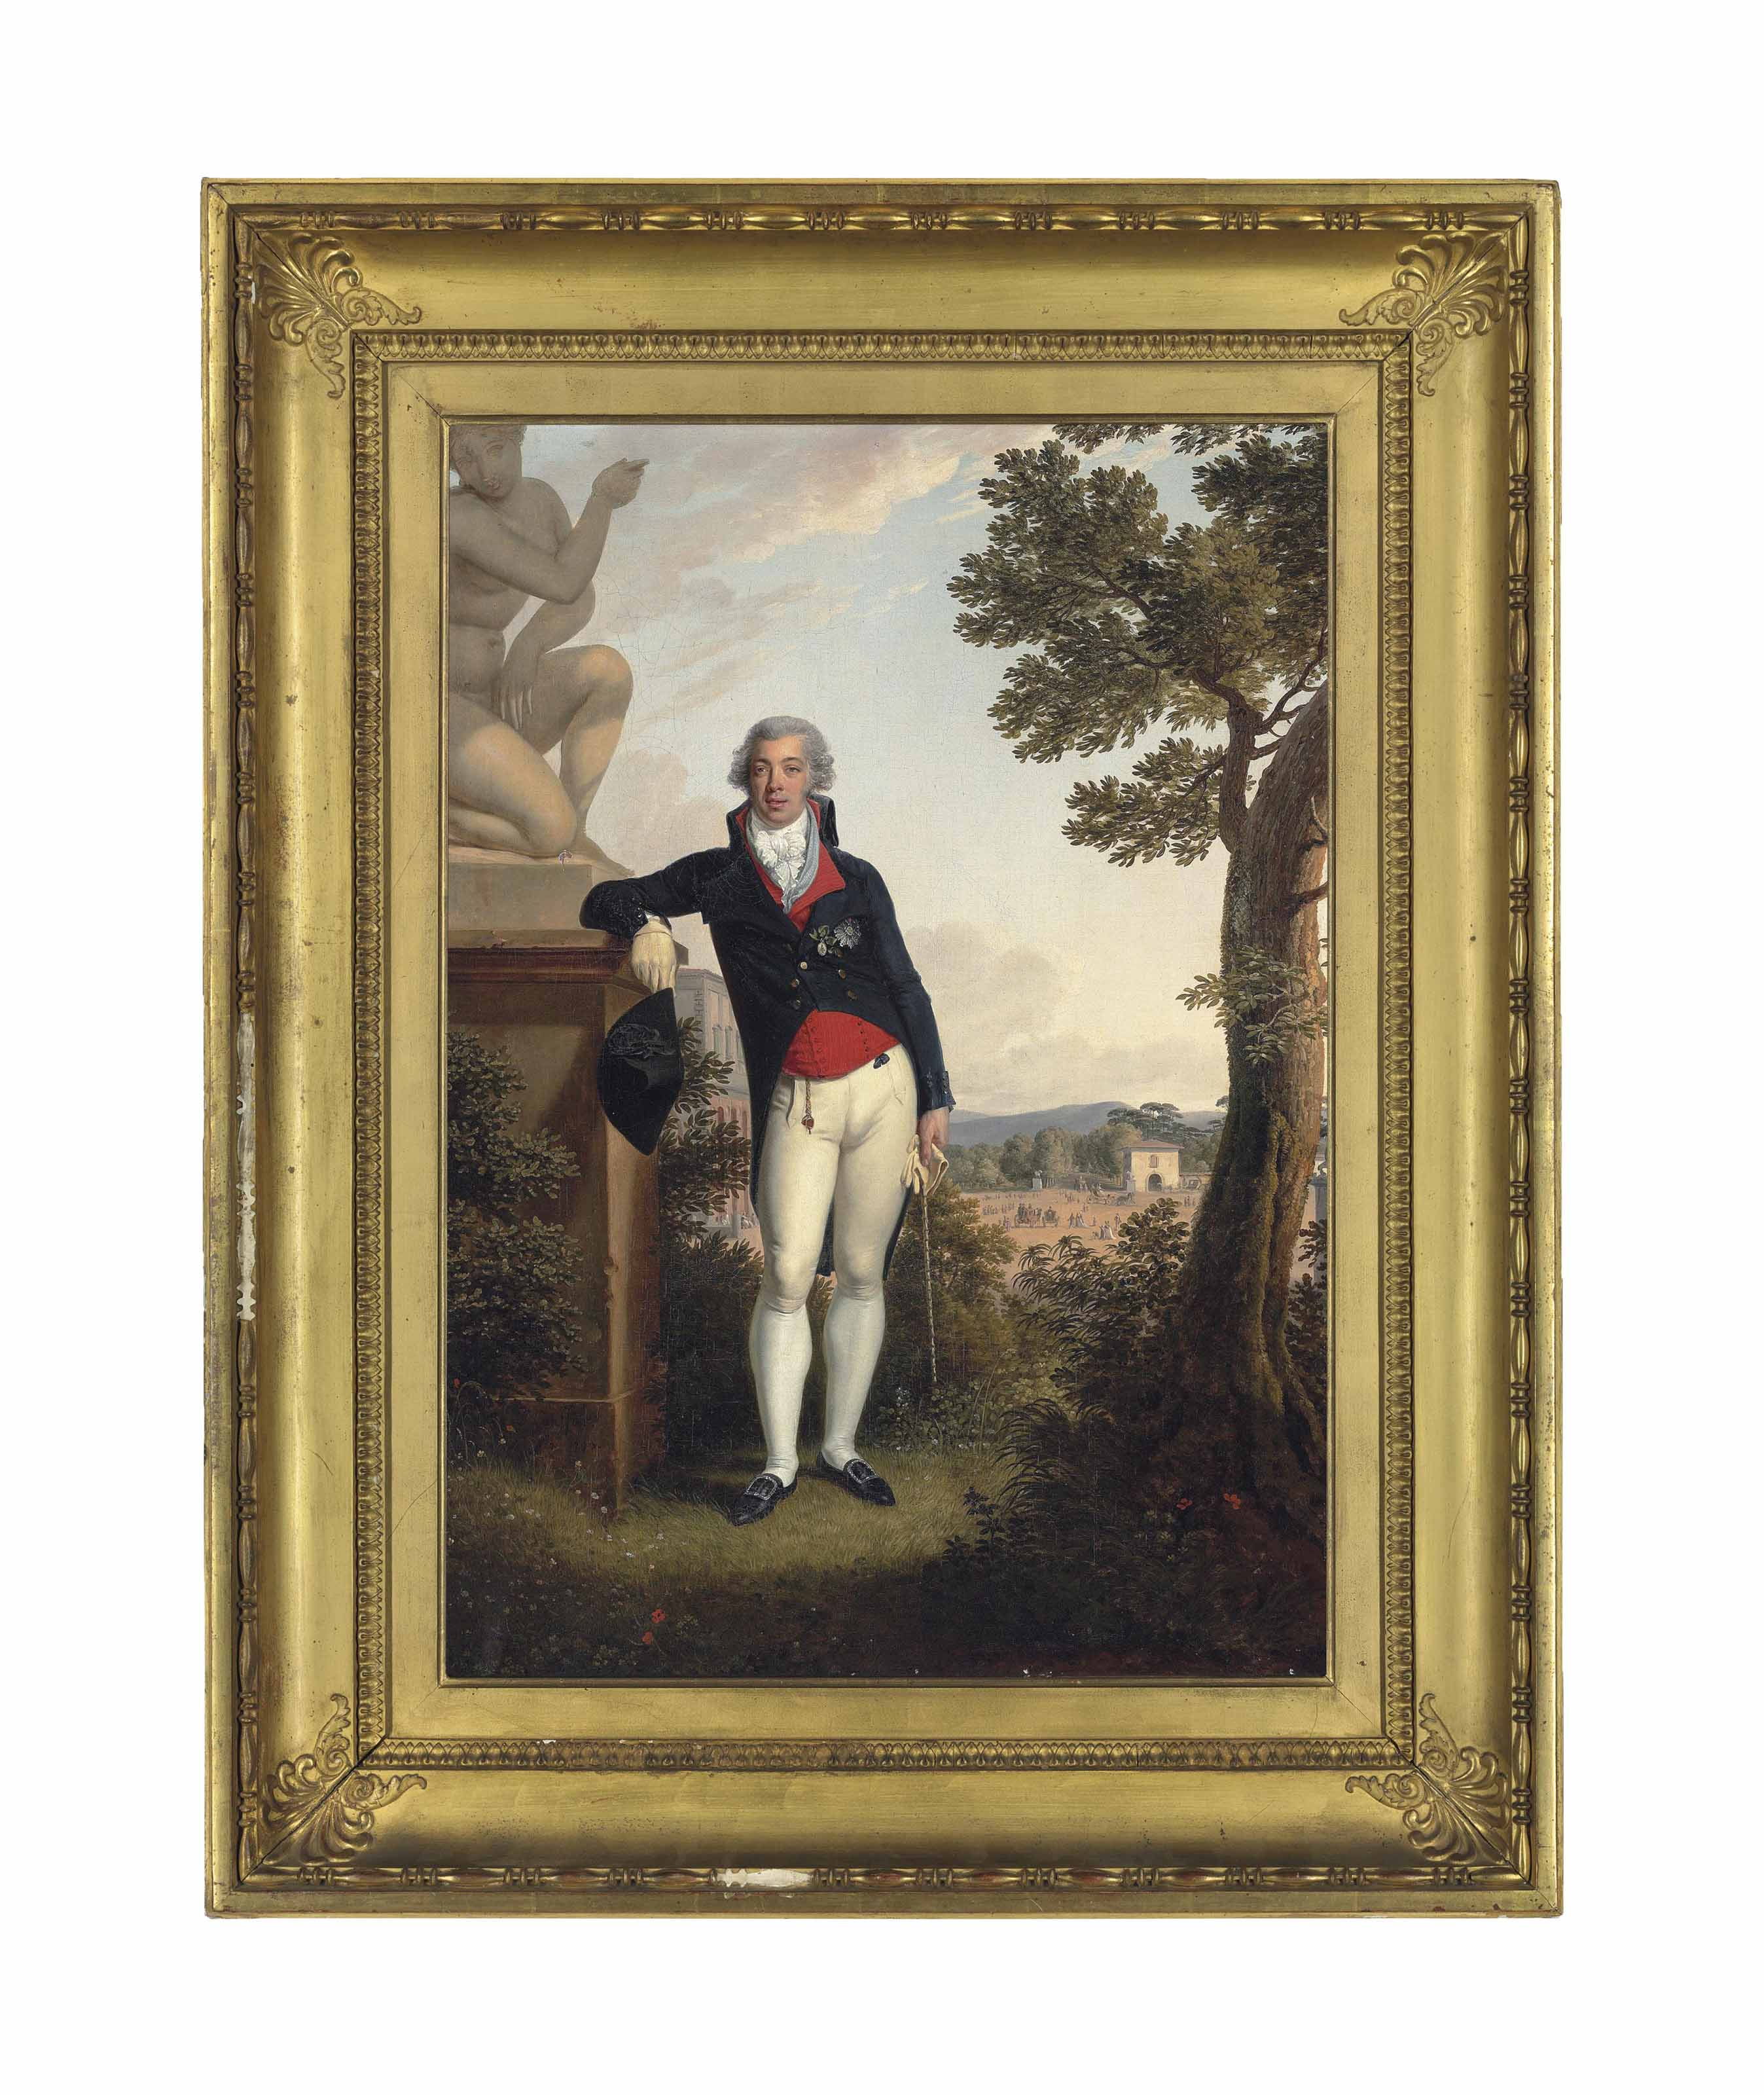 Portrait of Lourenço José Xavier de Lima, 1st Count of Mafra (1767?-1839), small full-length, in a red waistcoat and navy coat, wearing the decorations of the Order of Aviz, leaning against a pedestal with a sculpture of the Crouching Venus, in the campagna outside Florence